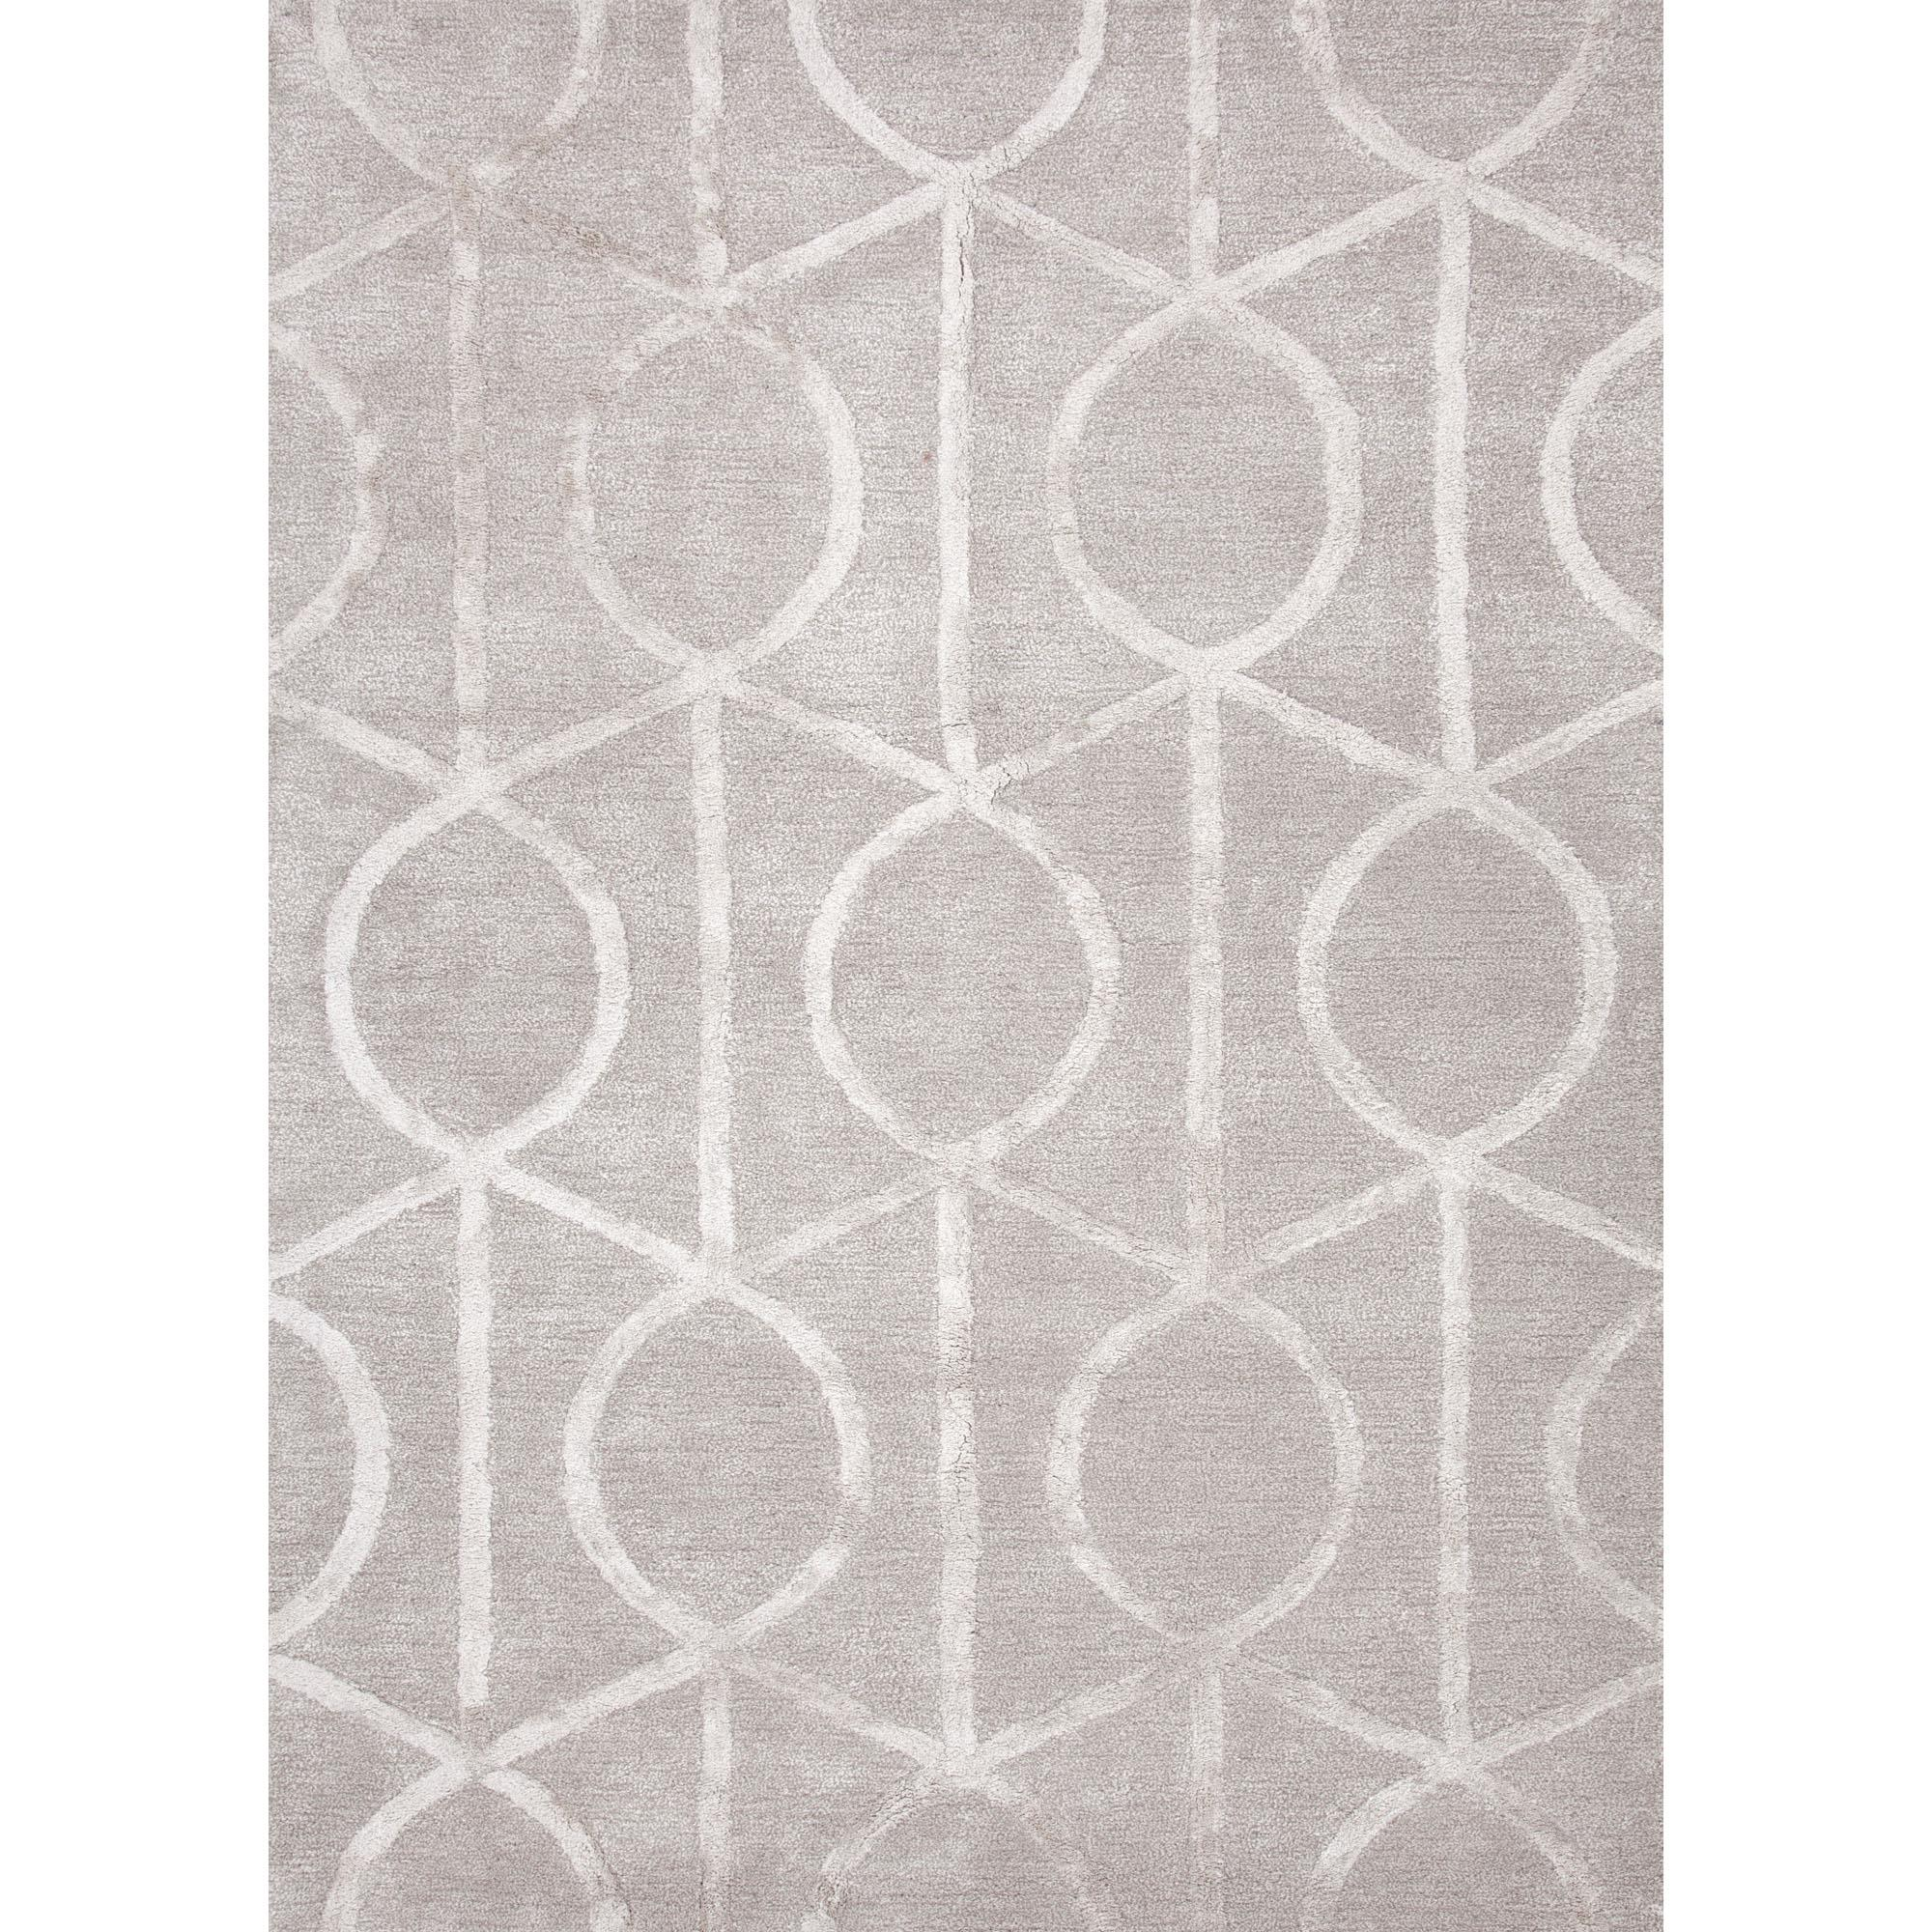 JAIPUR Rugs City 5 x 8 Rug - Item Number: RUG101414